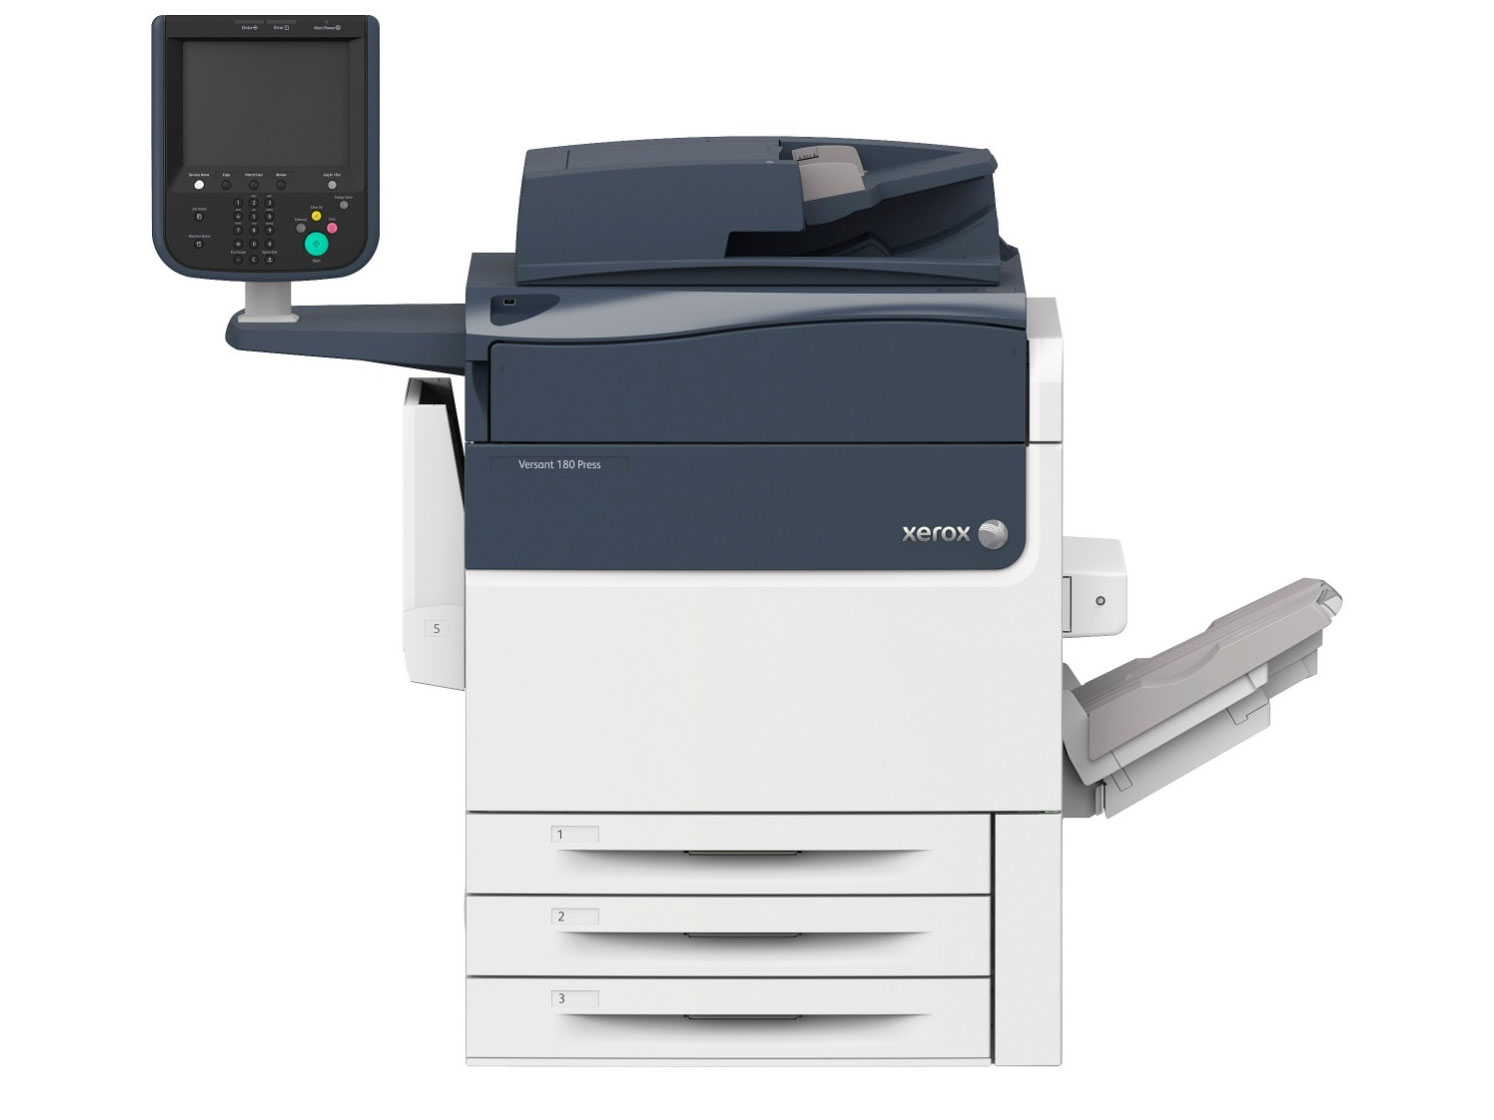 Xerox Versant 180 Press with Performance Package en venta